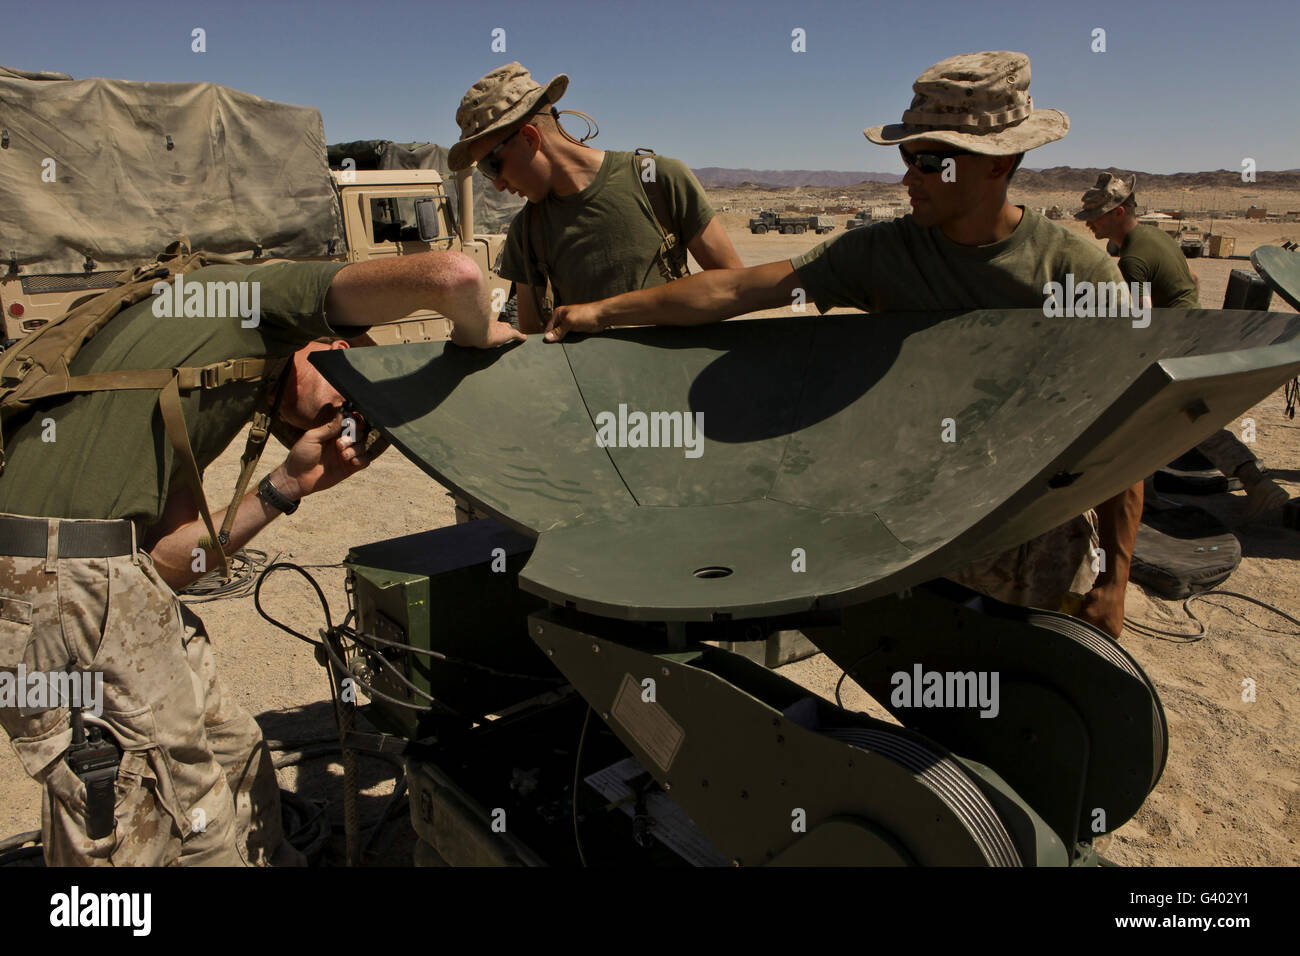 U.S. Marines assemble a support wide area network satellite dish. - Stock Image